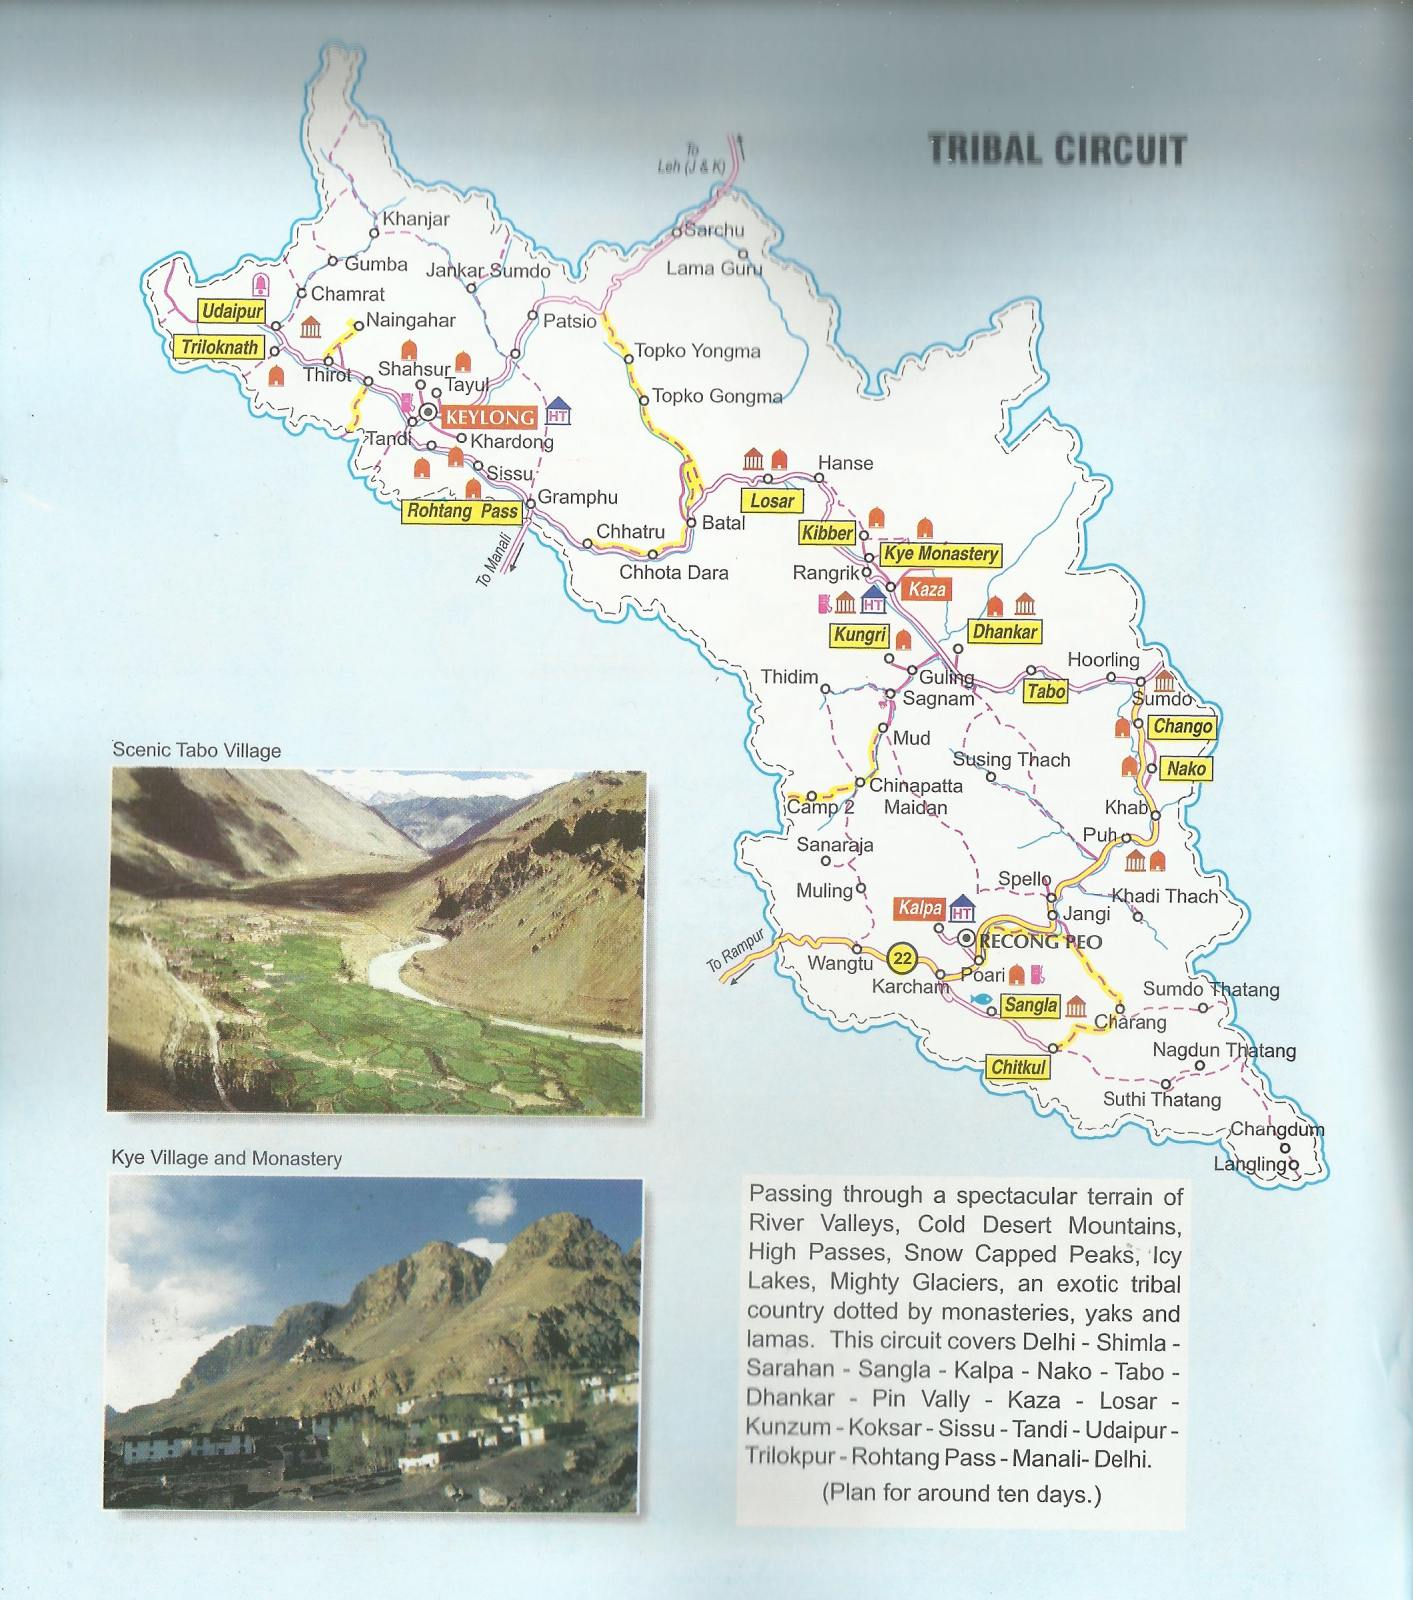 Manali India Map.Himachal Pradesh Tourist Maps Himachal Pradesh Travel Guide